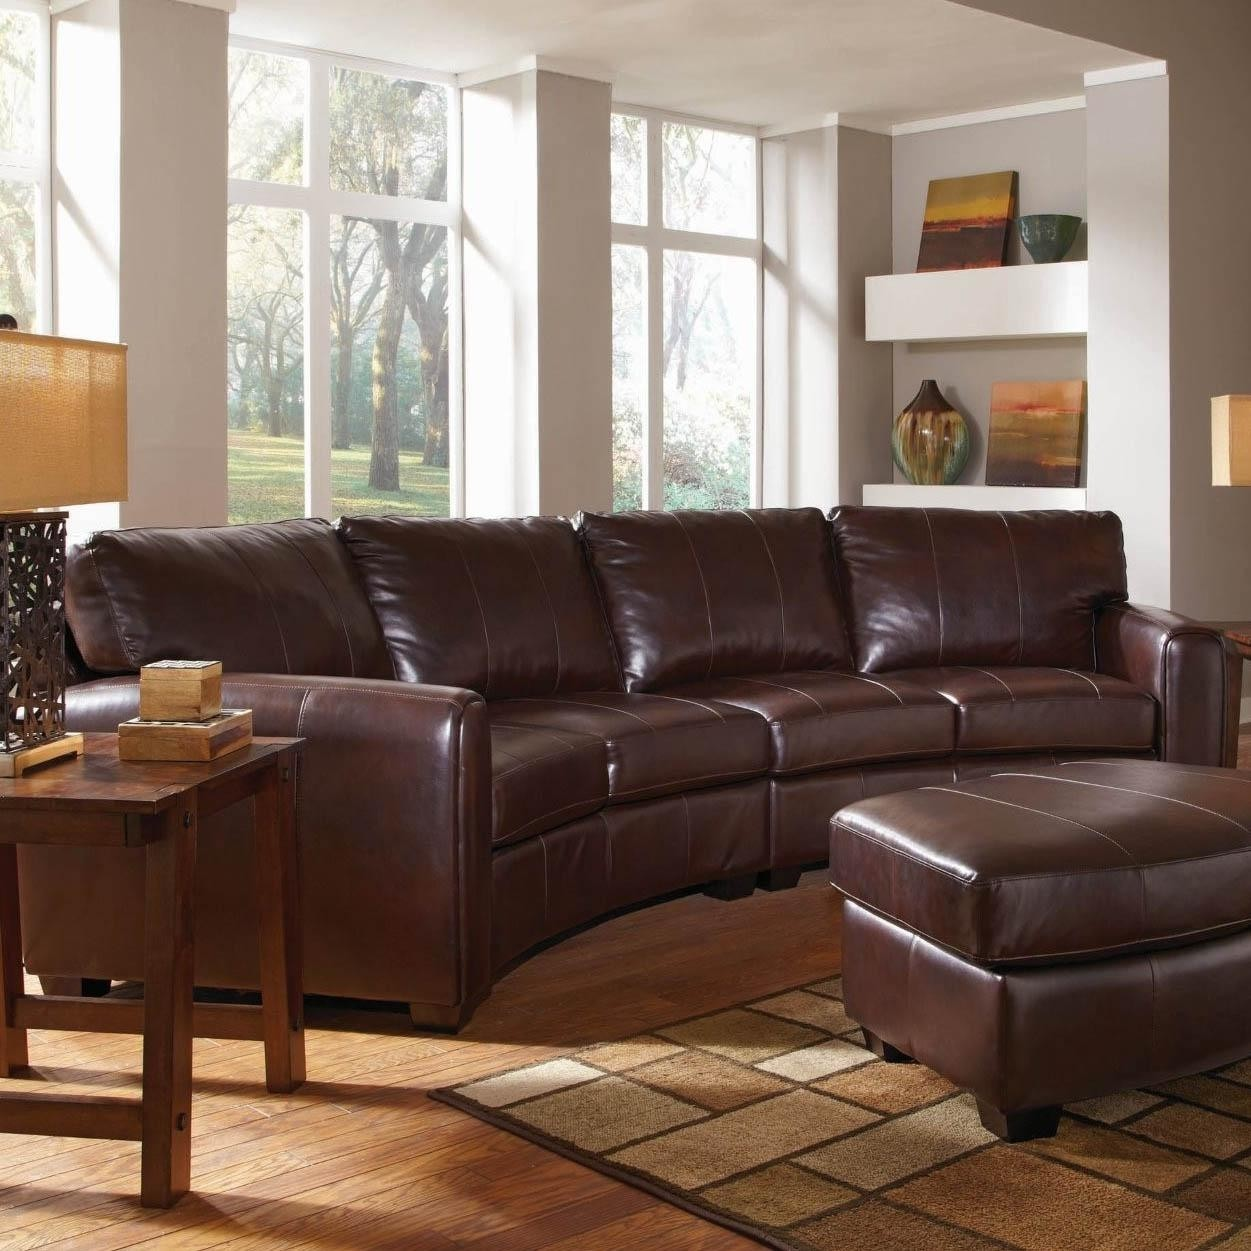 Bon Black Leather Curved Sectional Sofa Landen Contemporary Curved Leather